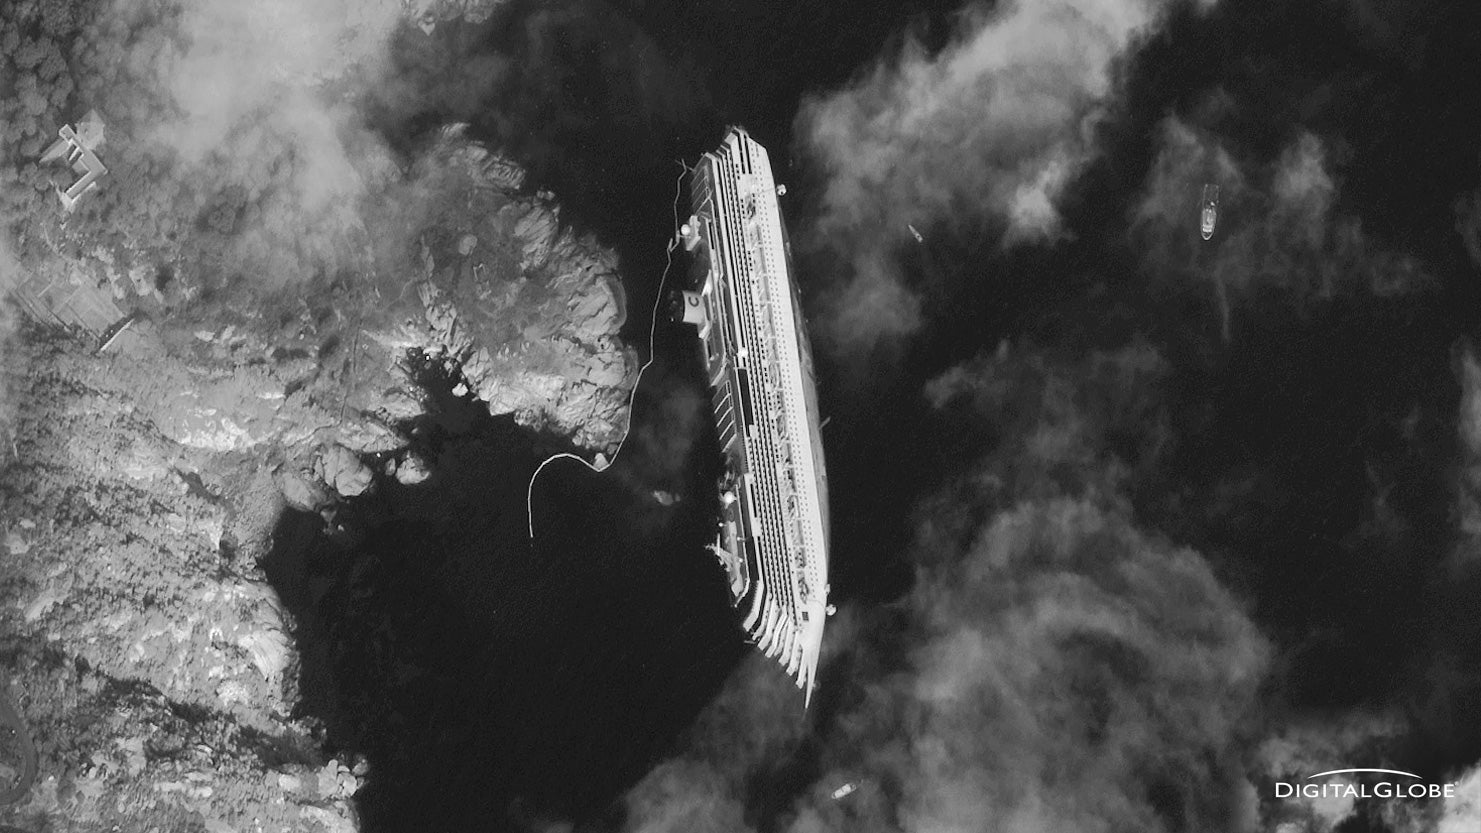 The Italian Sunken Ship From Space Looks Surreal